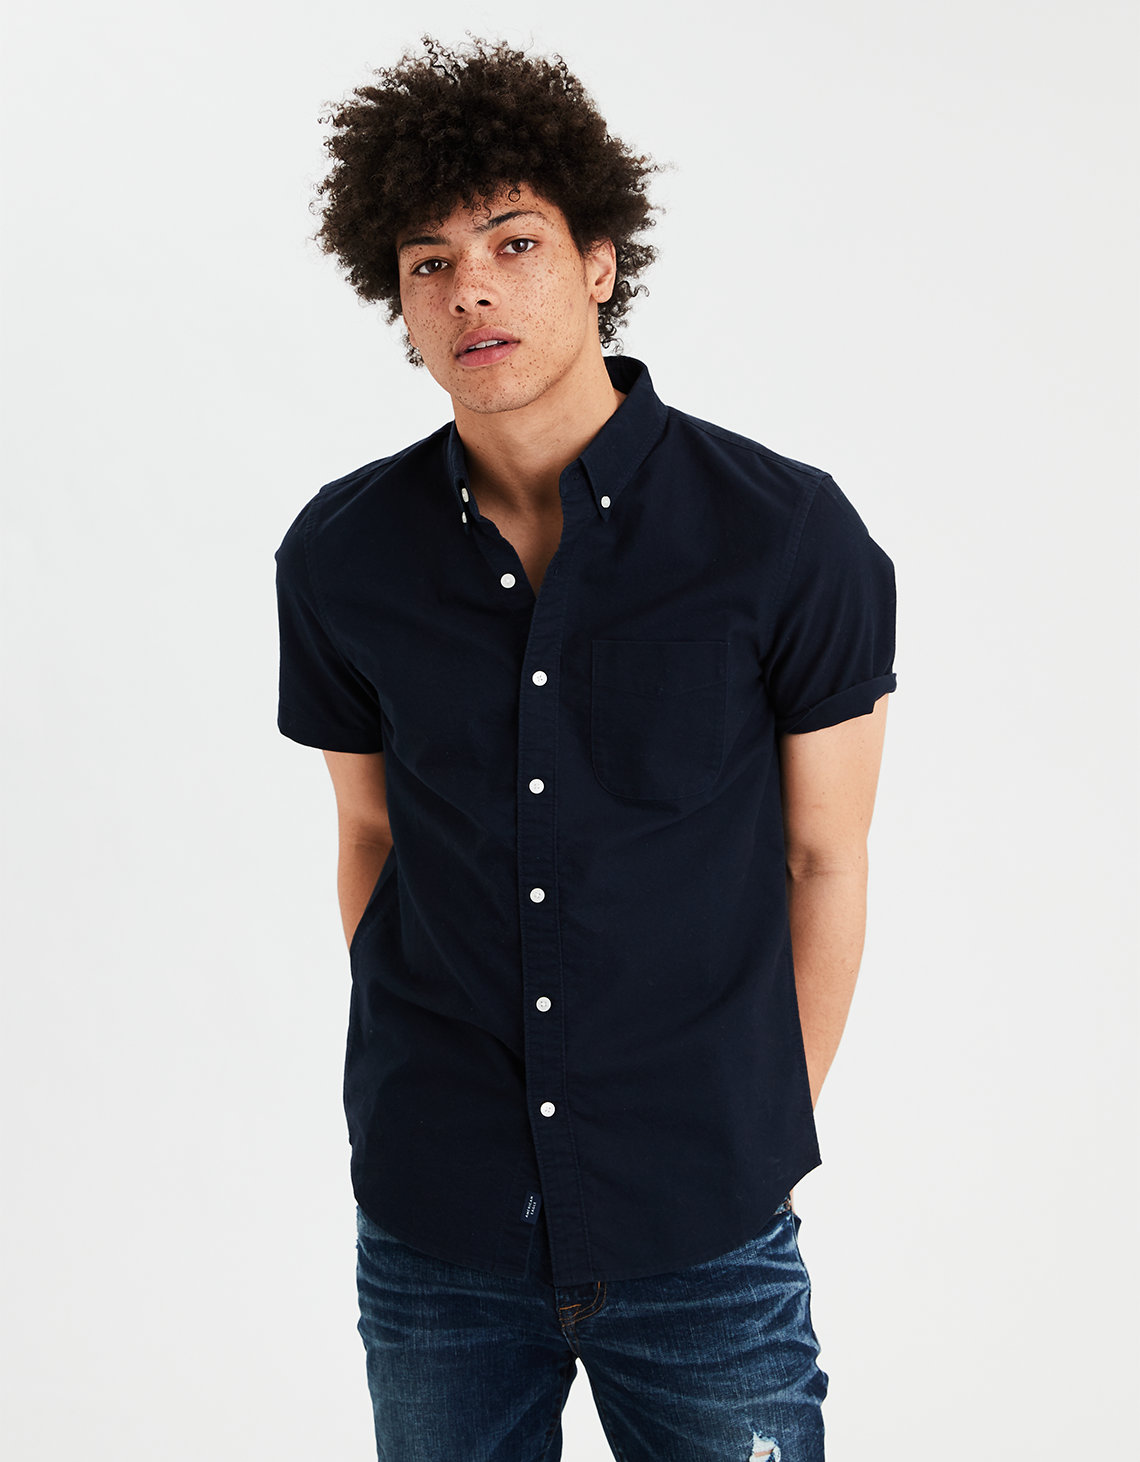 dd830f07 AE Short Sleeve Oxford Button Down Shirt. Placeholder image. Product Image